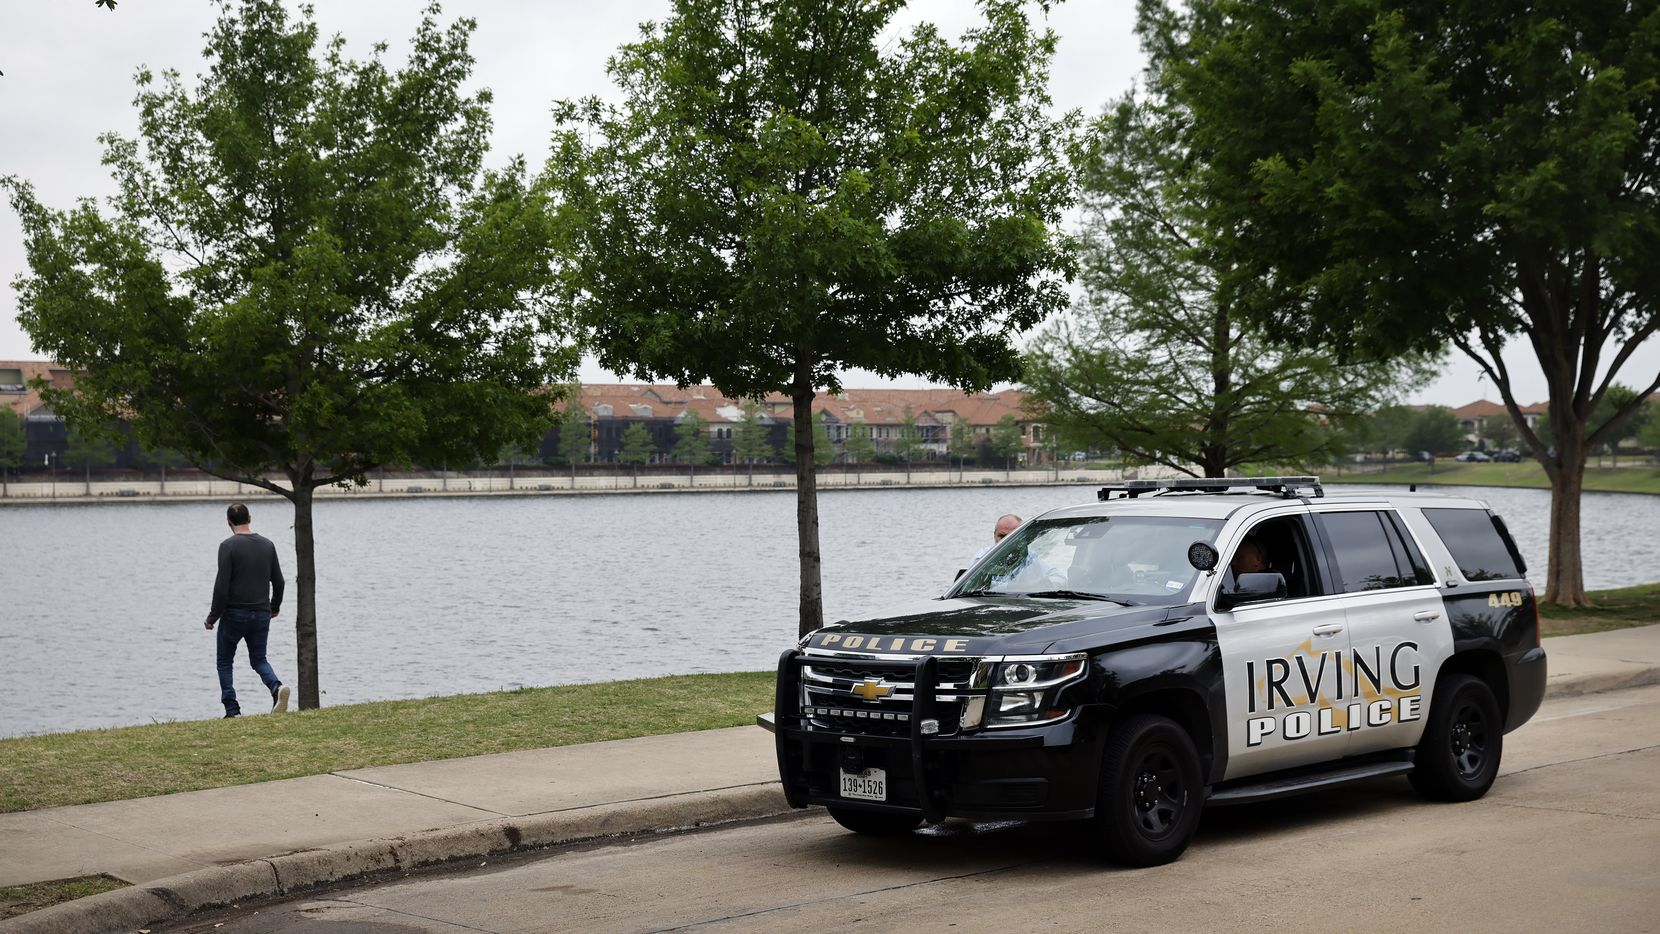 An Irving police officer is pictured along Lago de Claire where Lashun Massey went missing across the street from her Las Colinas home in Irving on Tuesday.